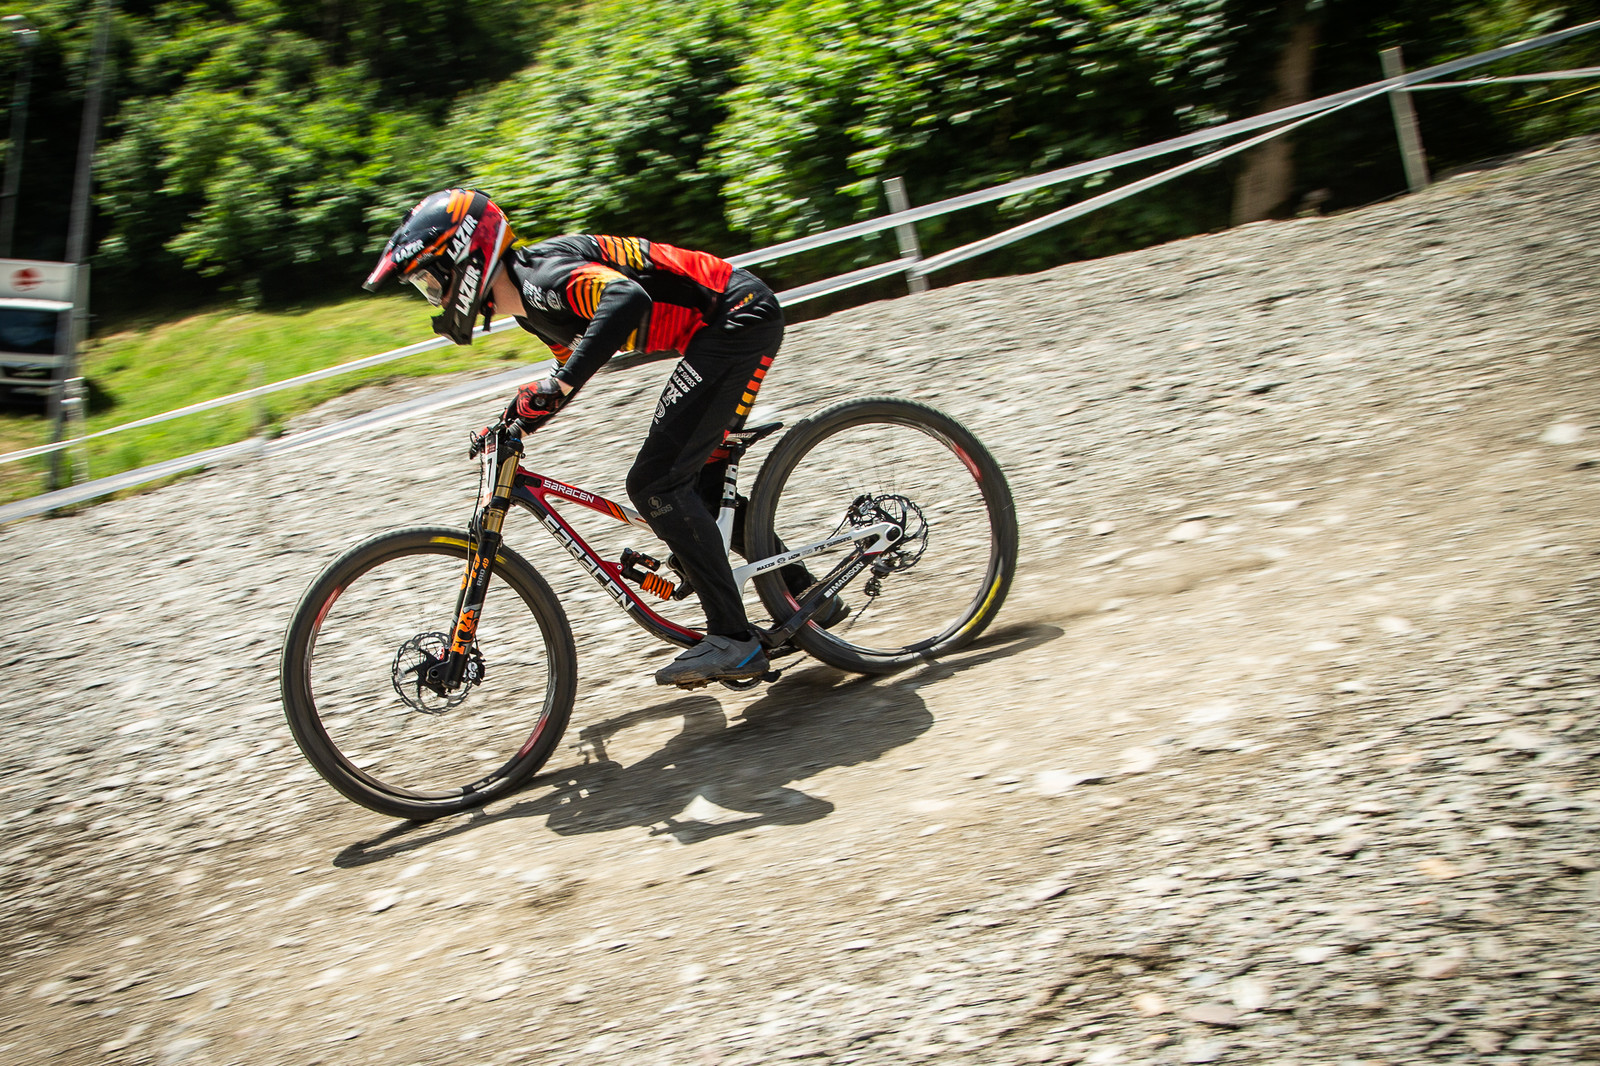 Saracen Myst - G-Out Project - Andorra World Cup DH - Mountain Biking Pictures - Vital MTB